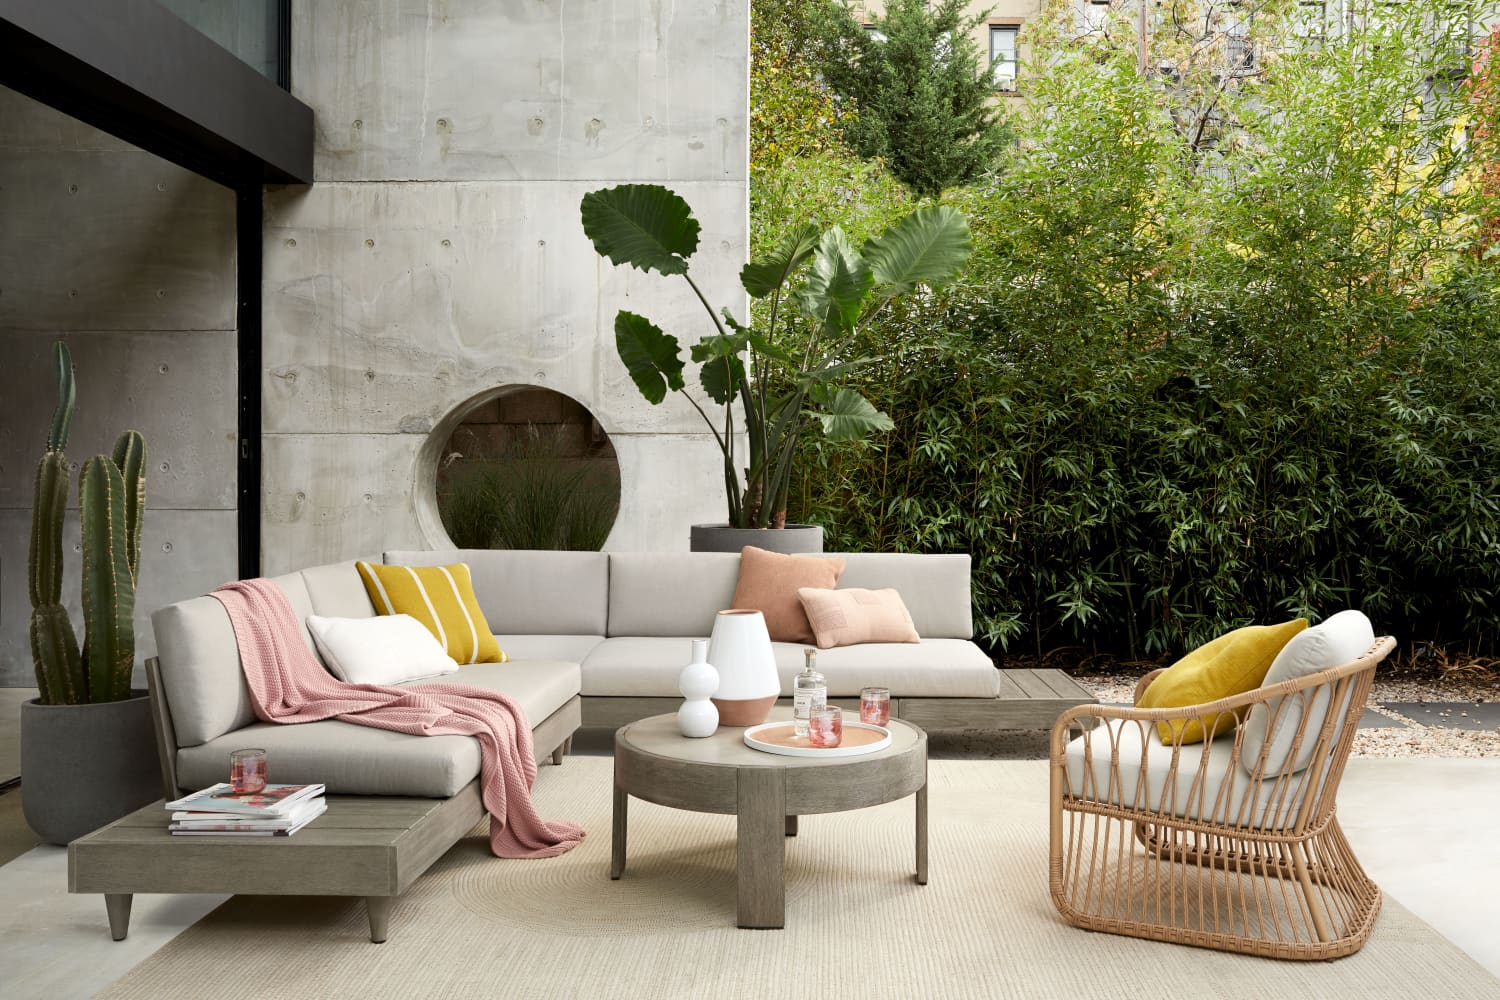 These Are the 9 Pieces (Under $200!) I'm Loving From West Elm's New Summer Collection